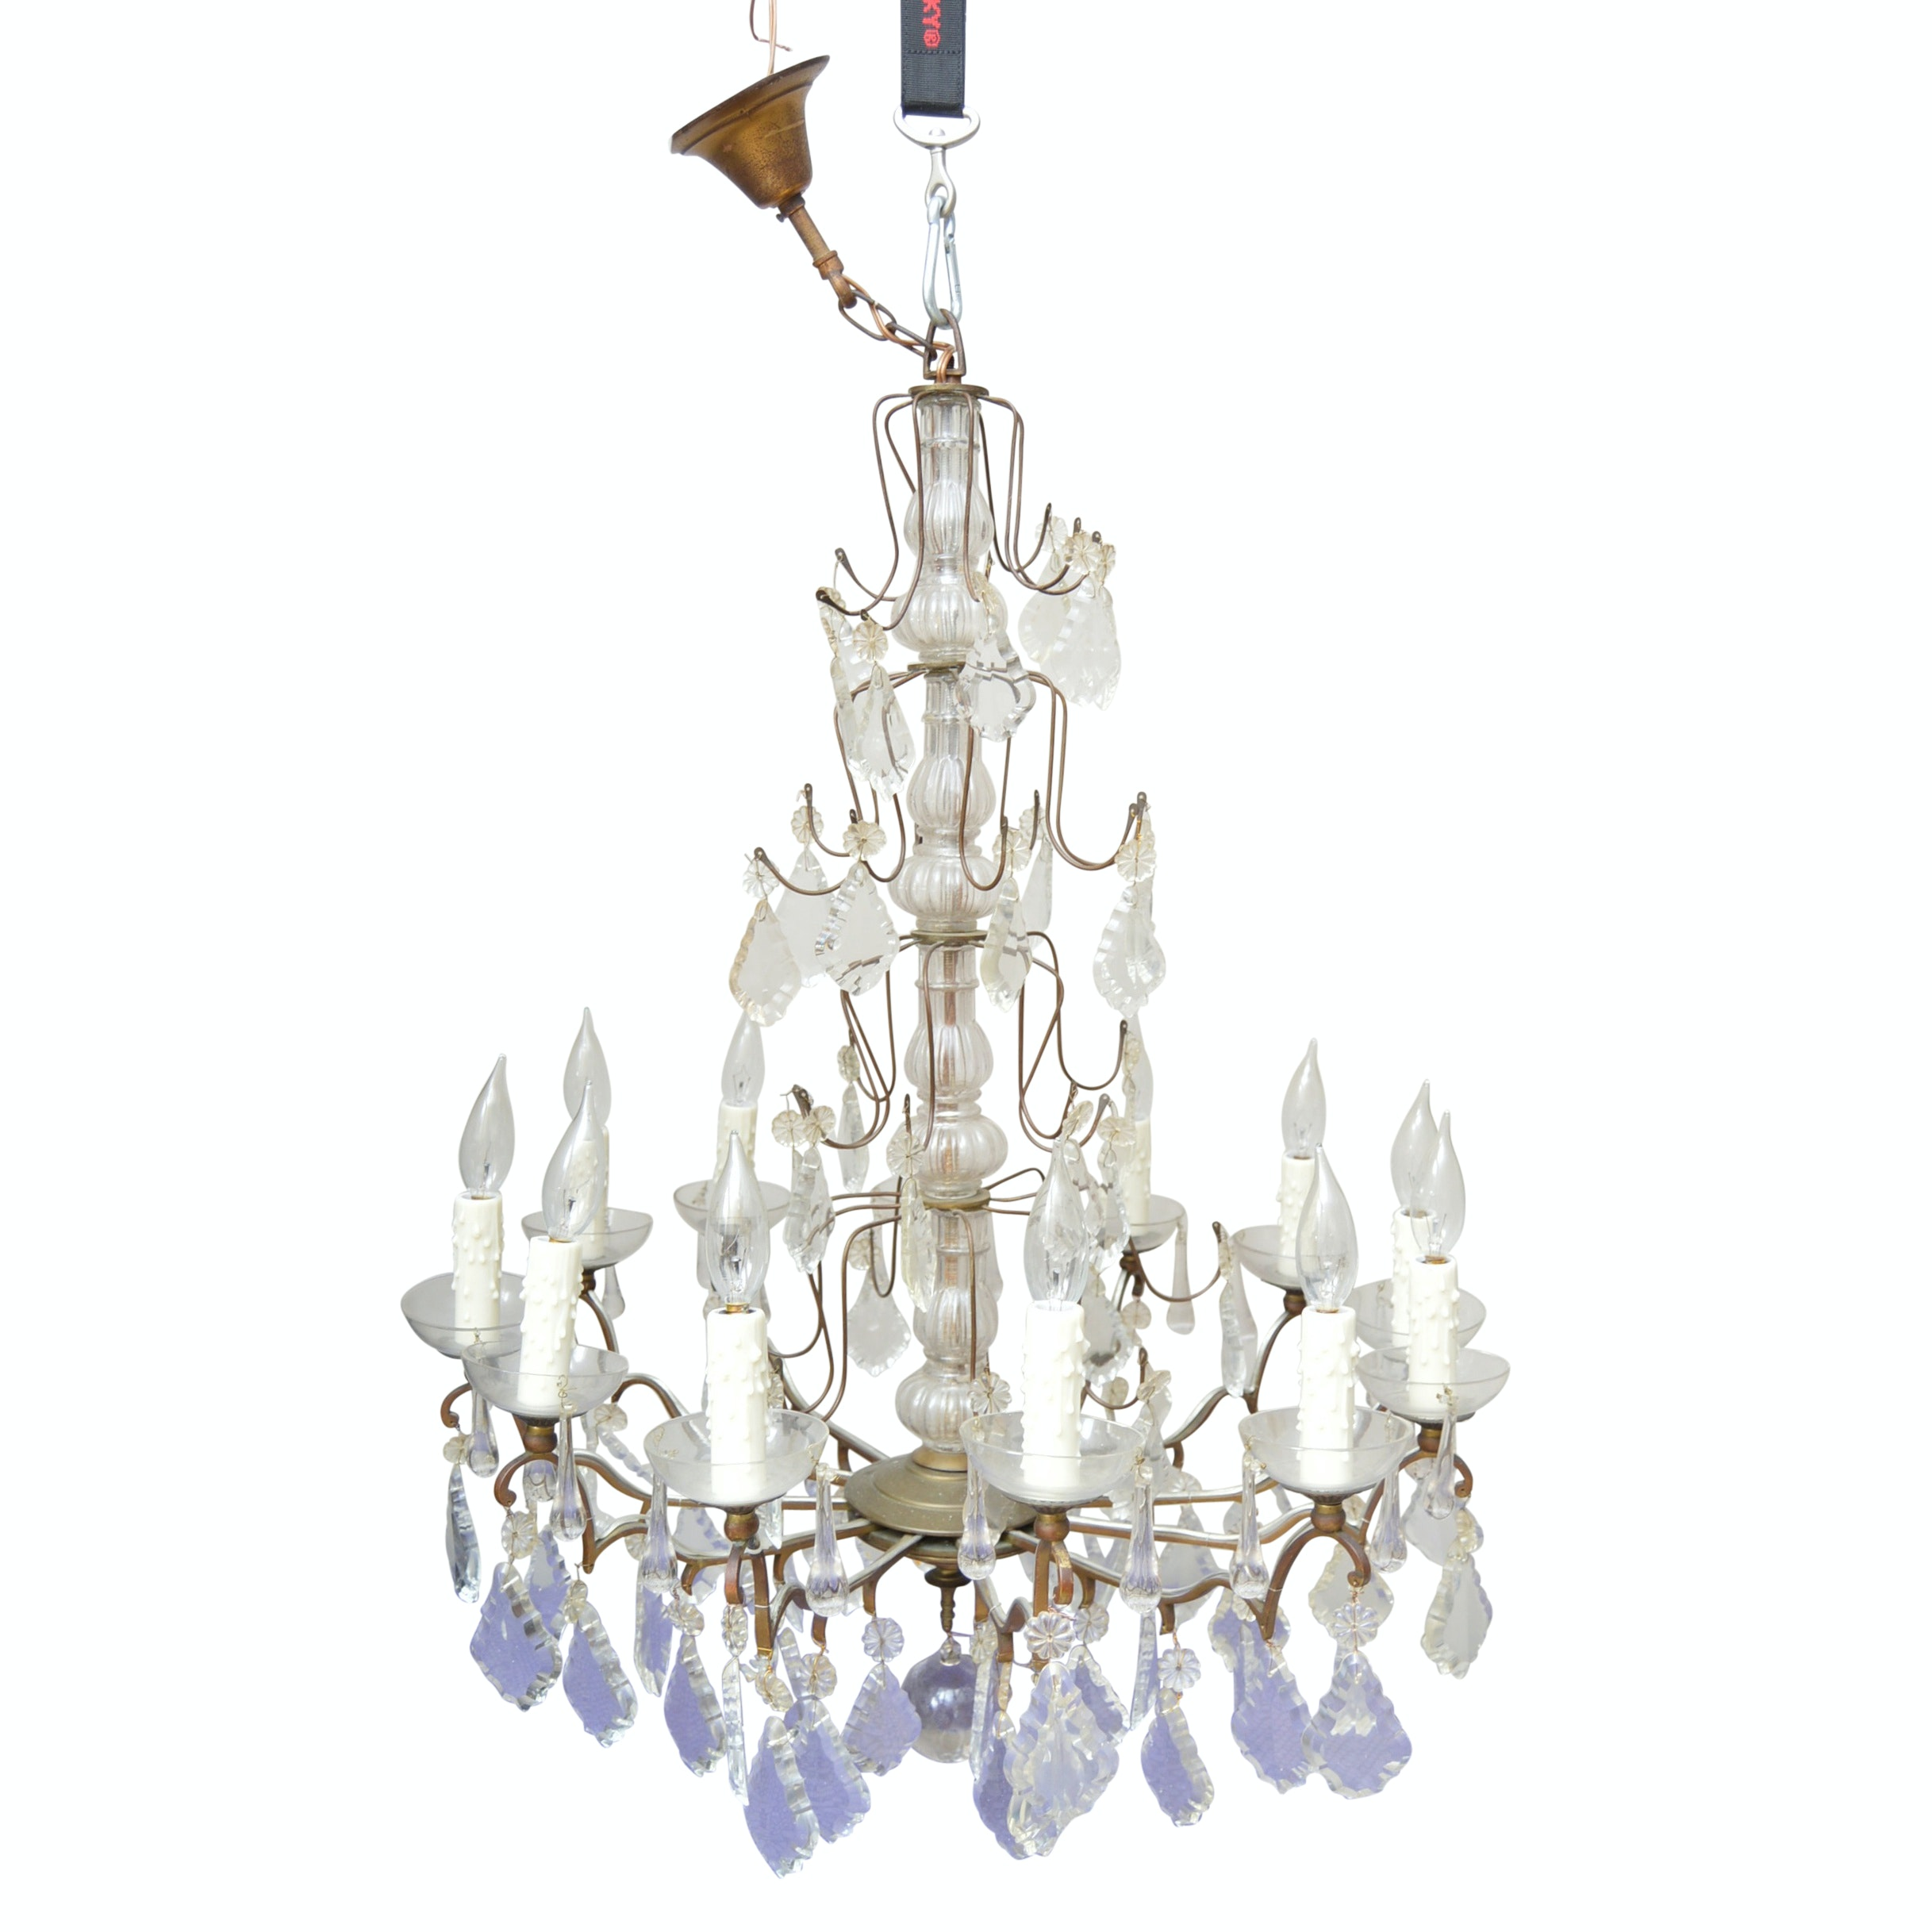 Vintage French Twelve-Arm Pendeloque Crystal Chandelier